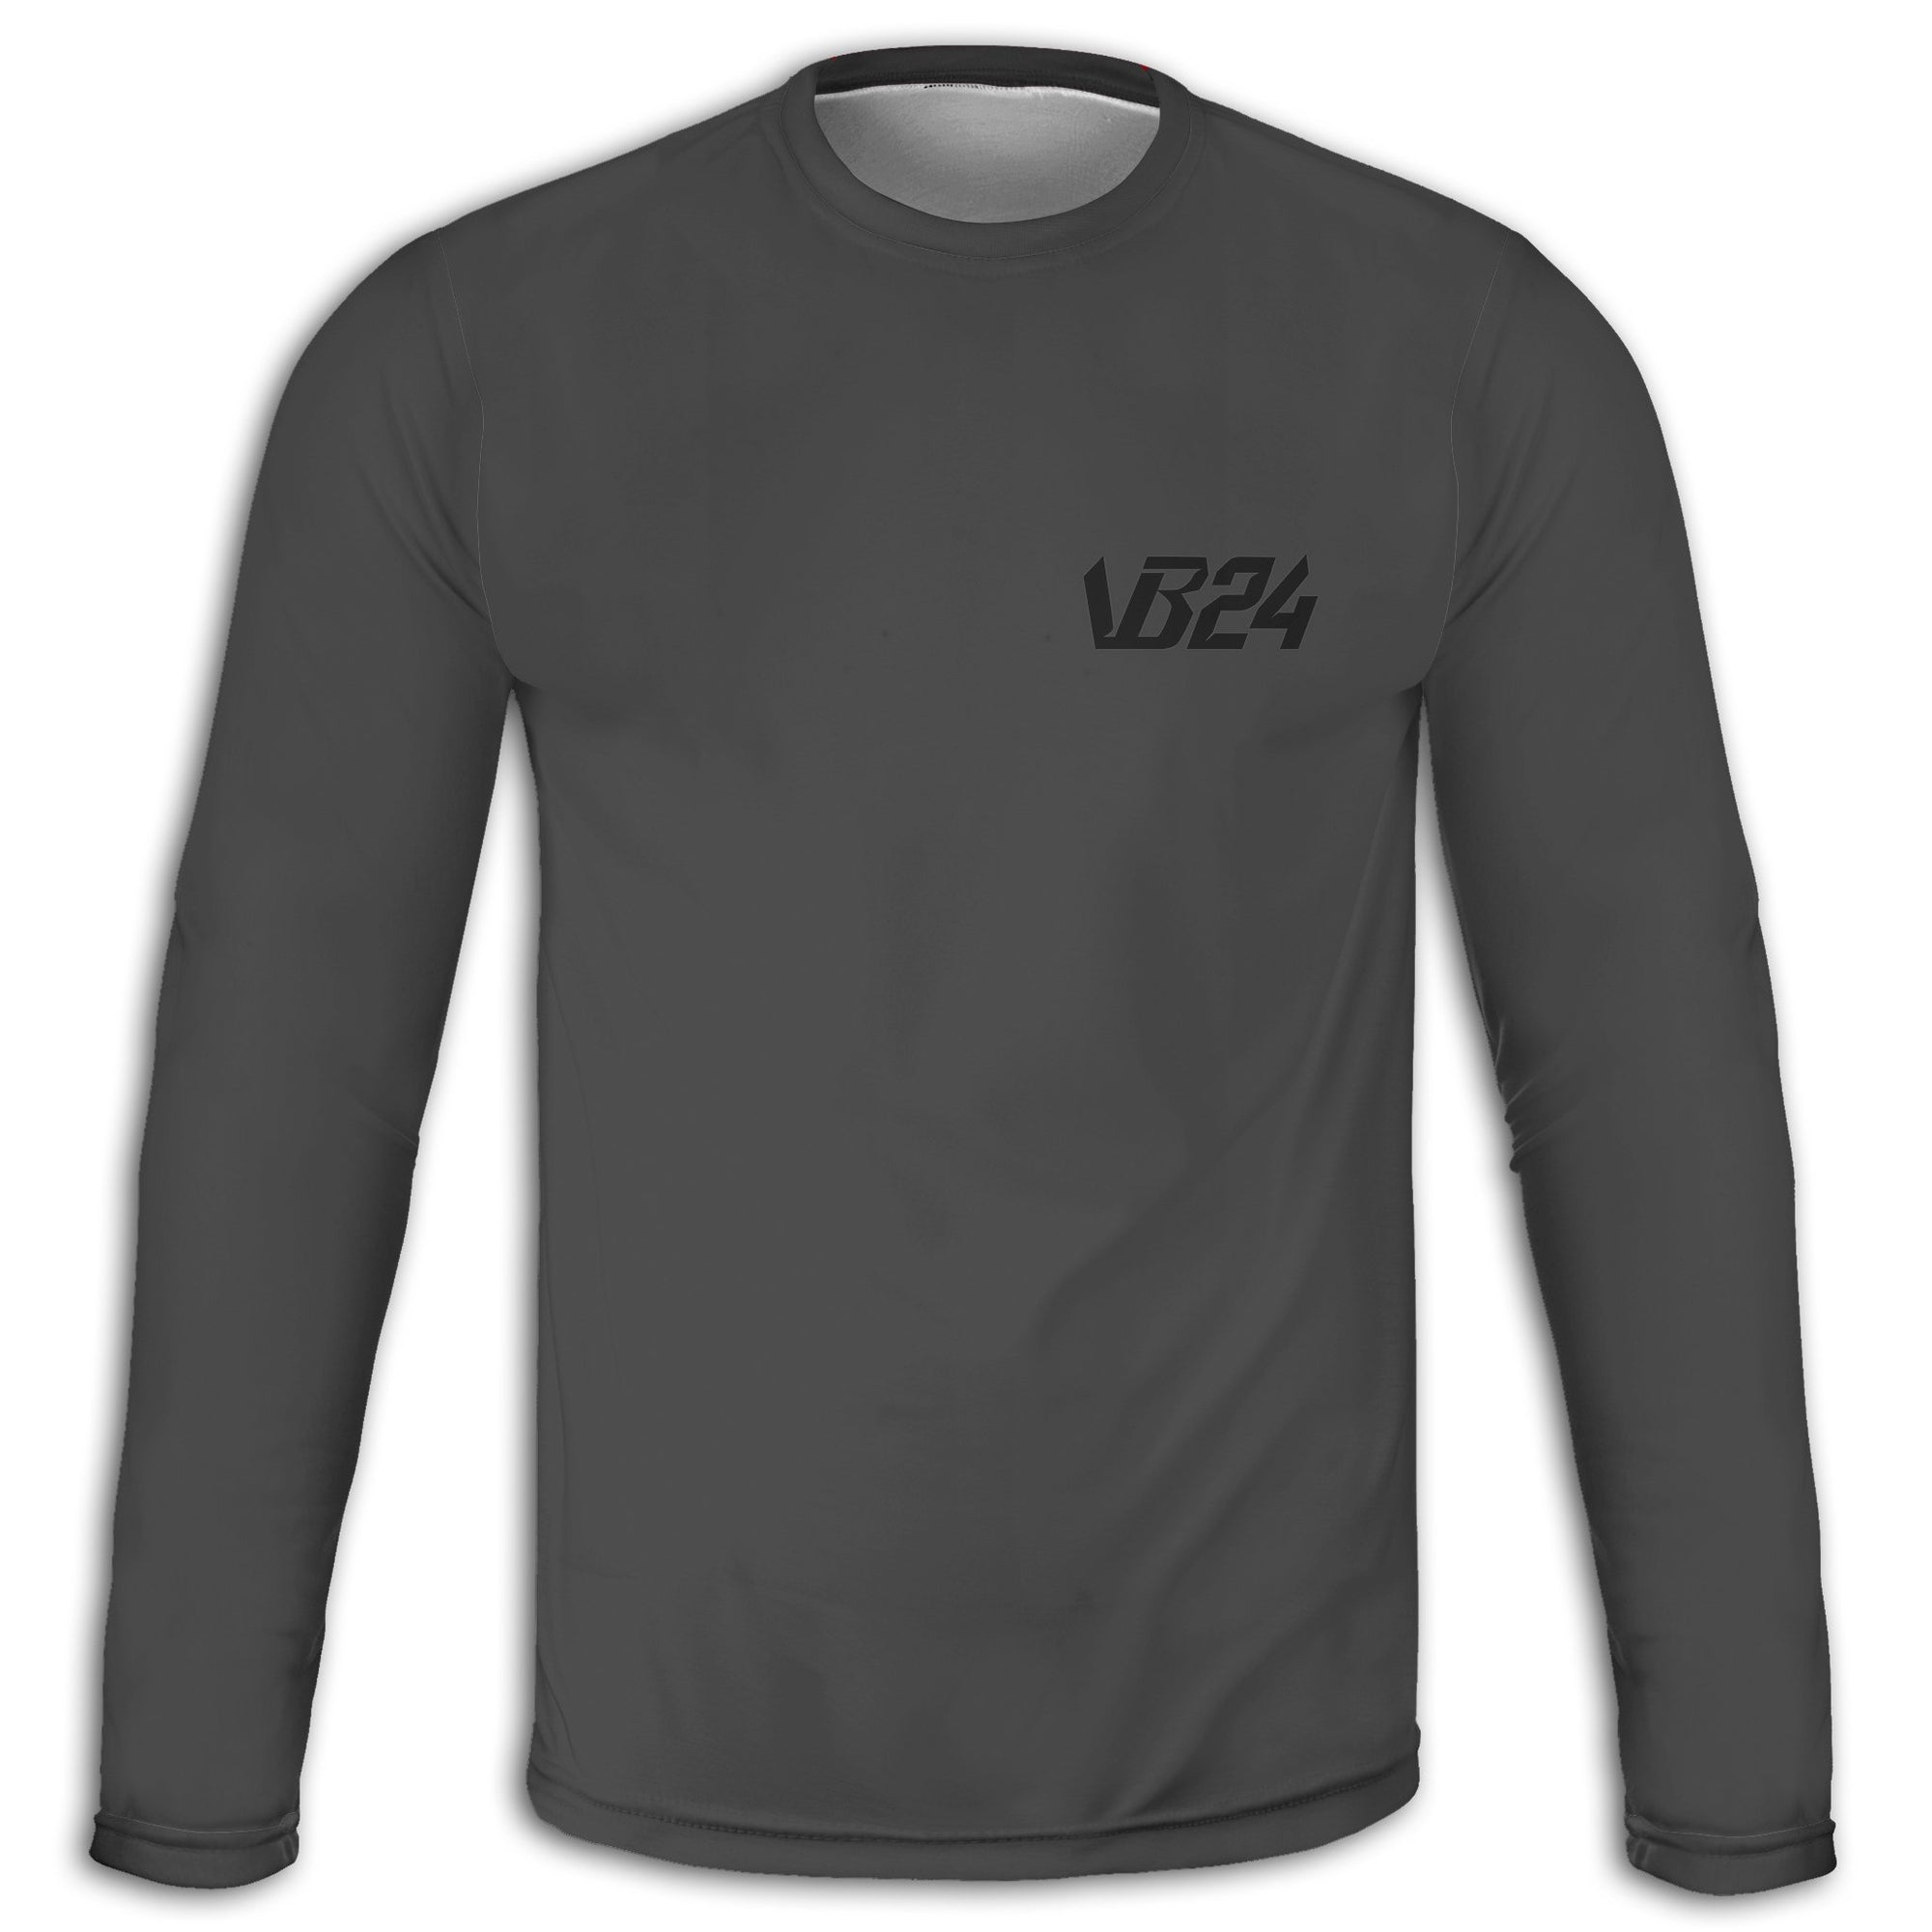 Twenty Four - Grey Long Sleeve Tee | vonbellshop.com